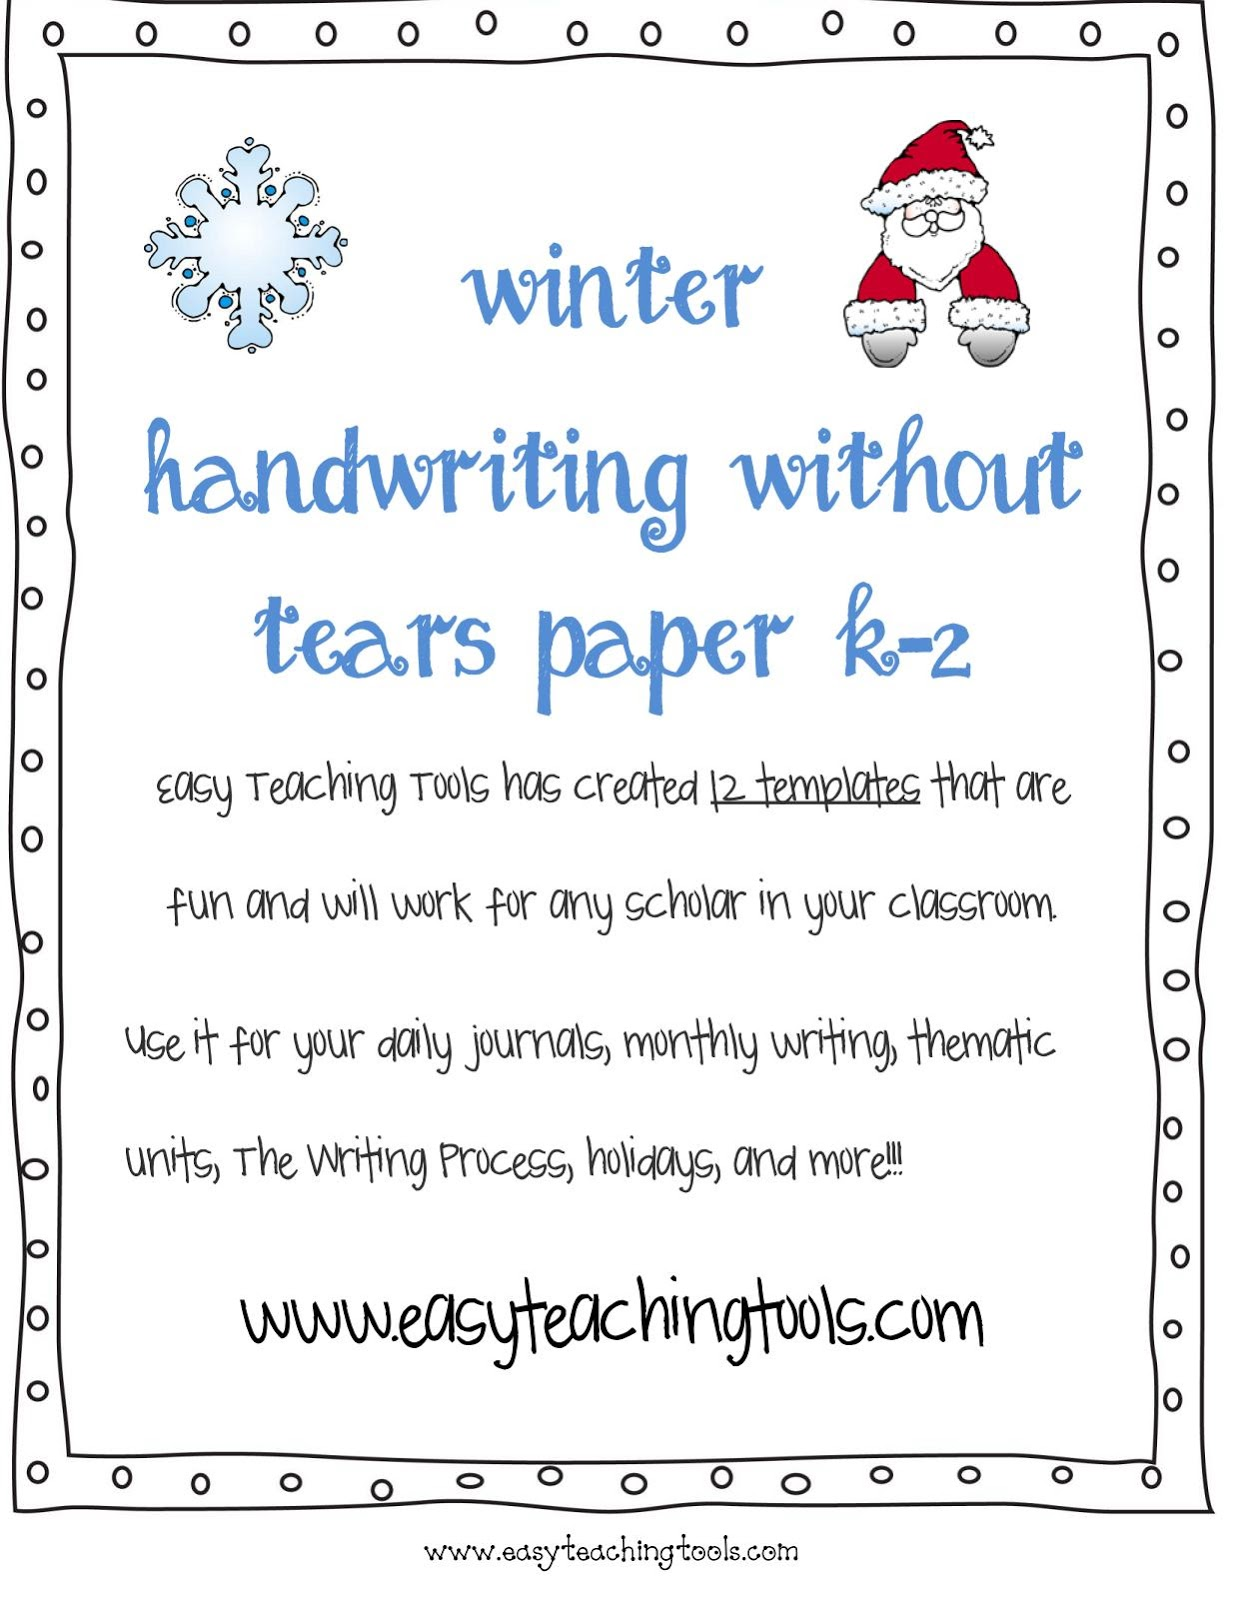 handwriting without tears coupons